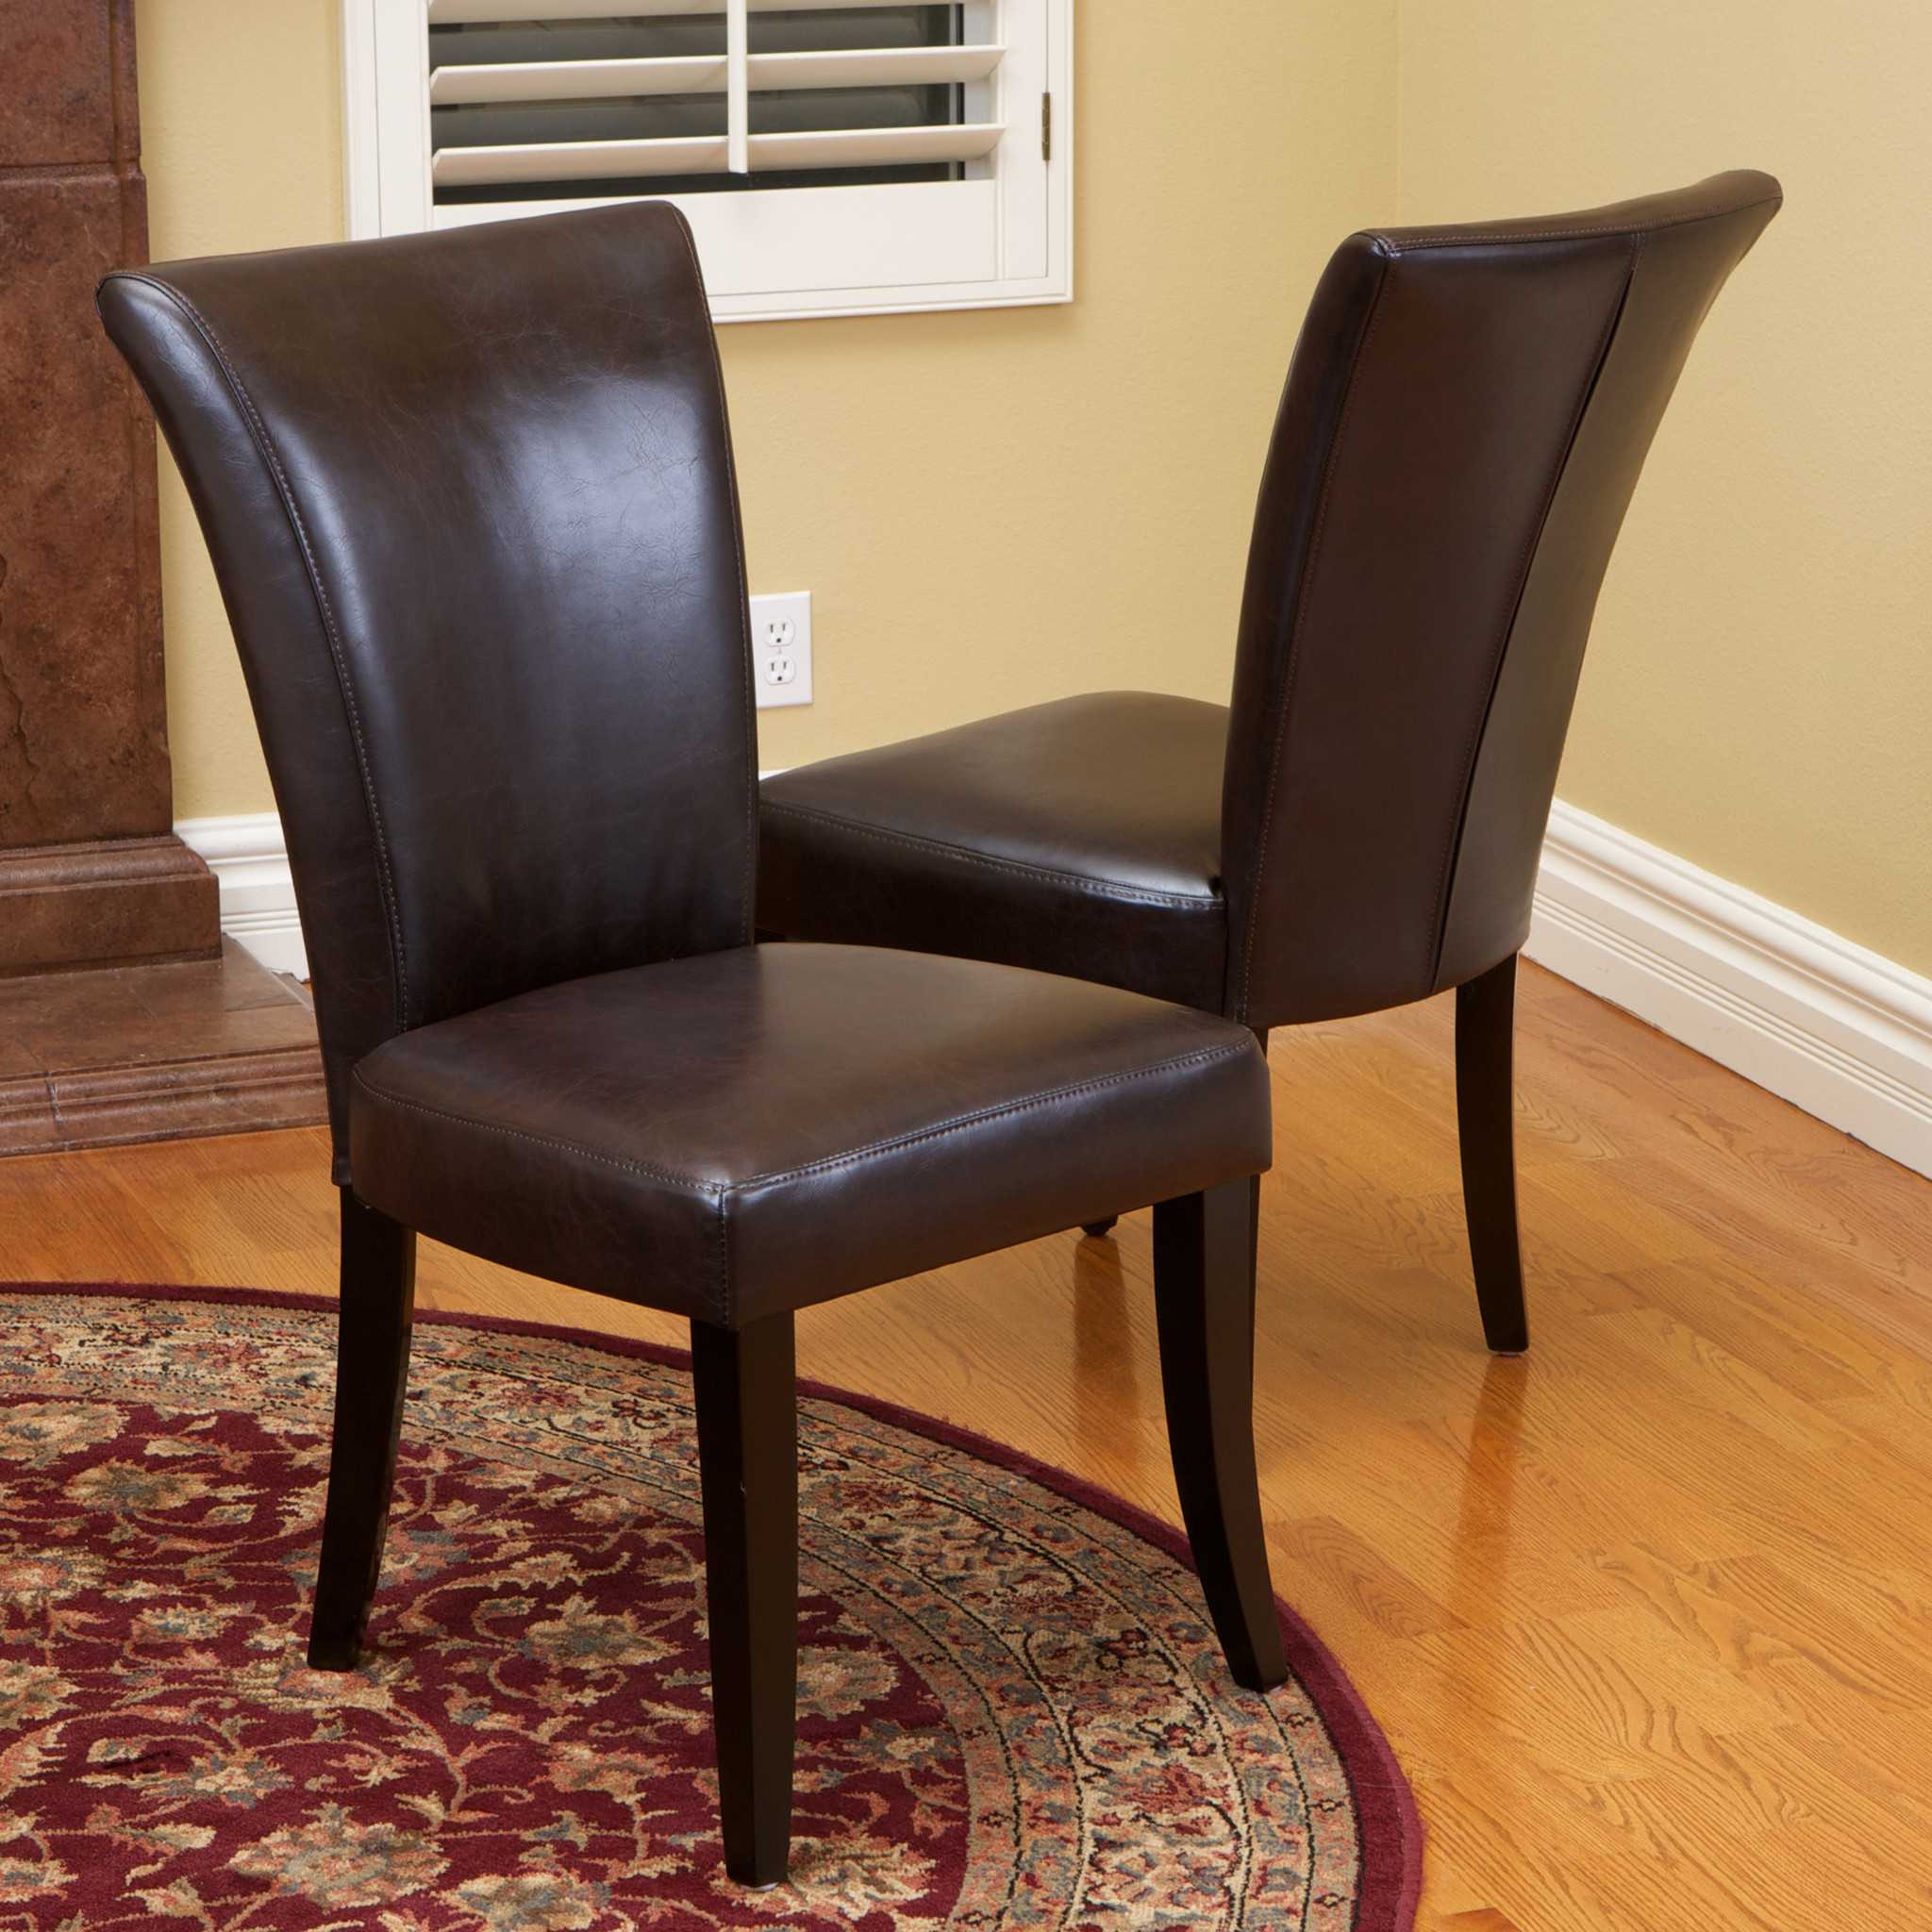 Leather Dining Room Chairs With Metal Legs 2018 Also Beautiful Black